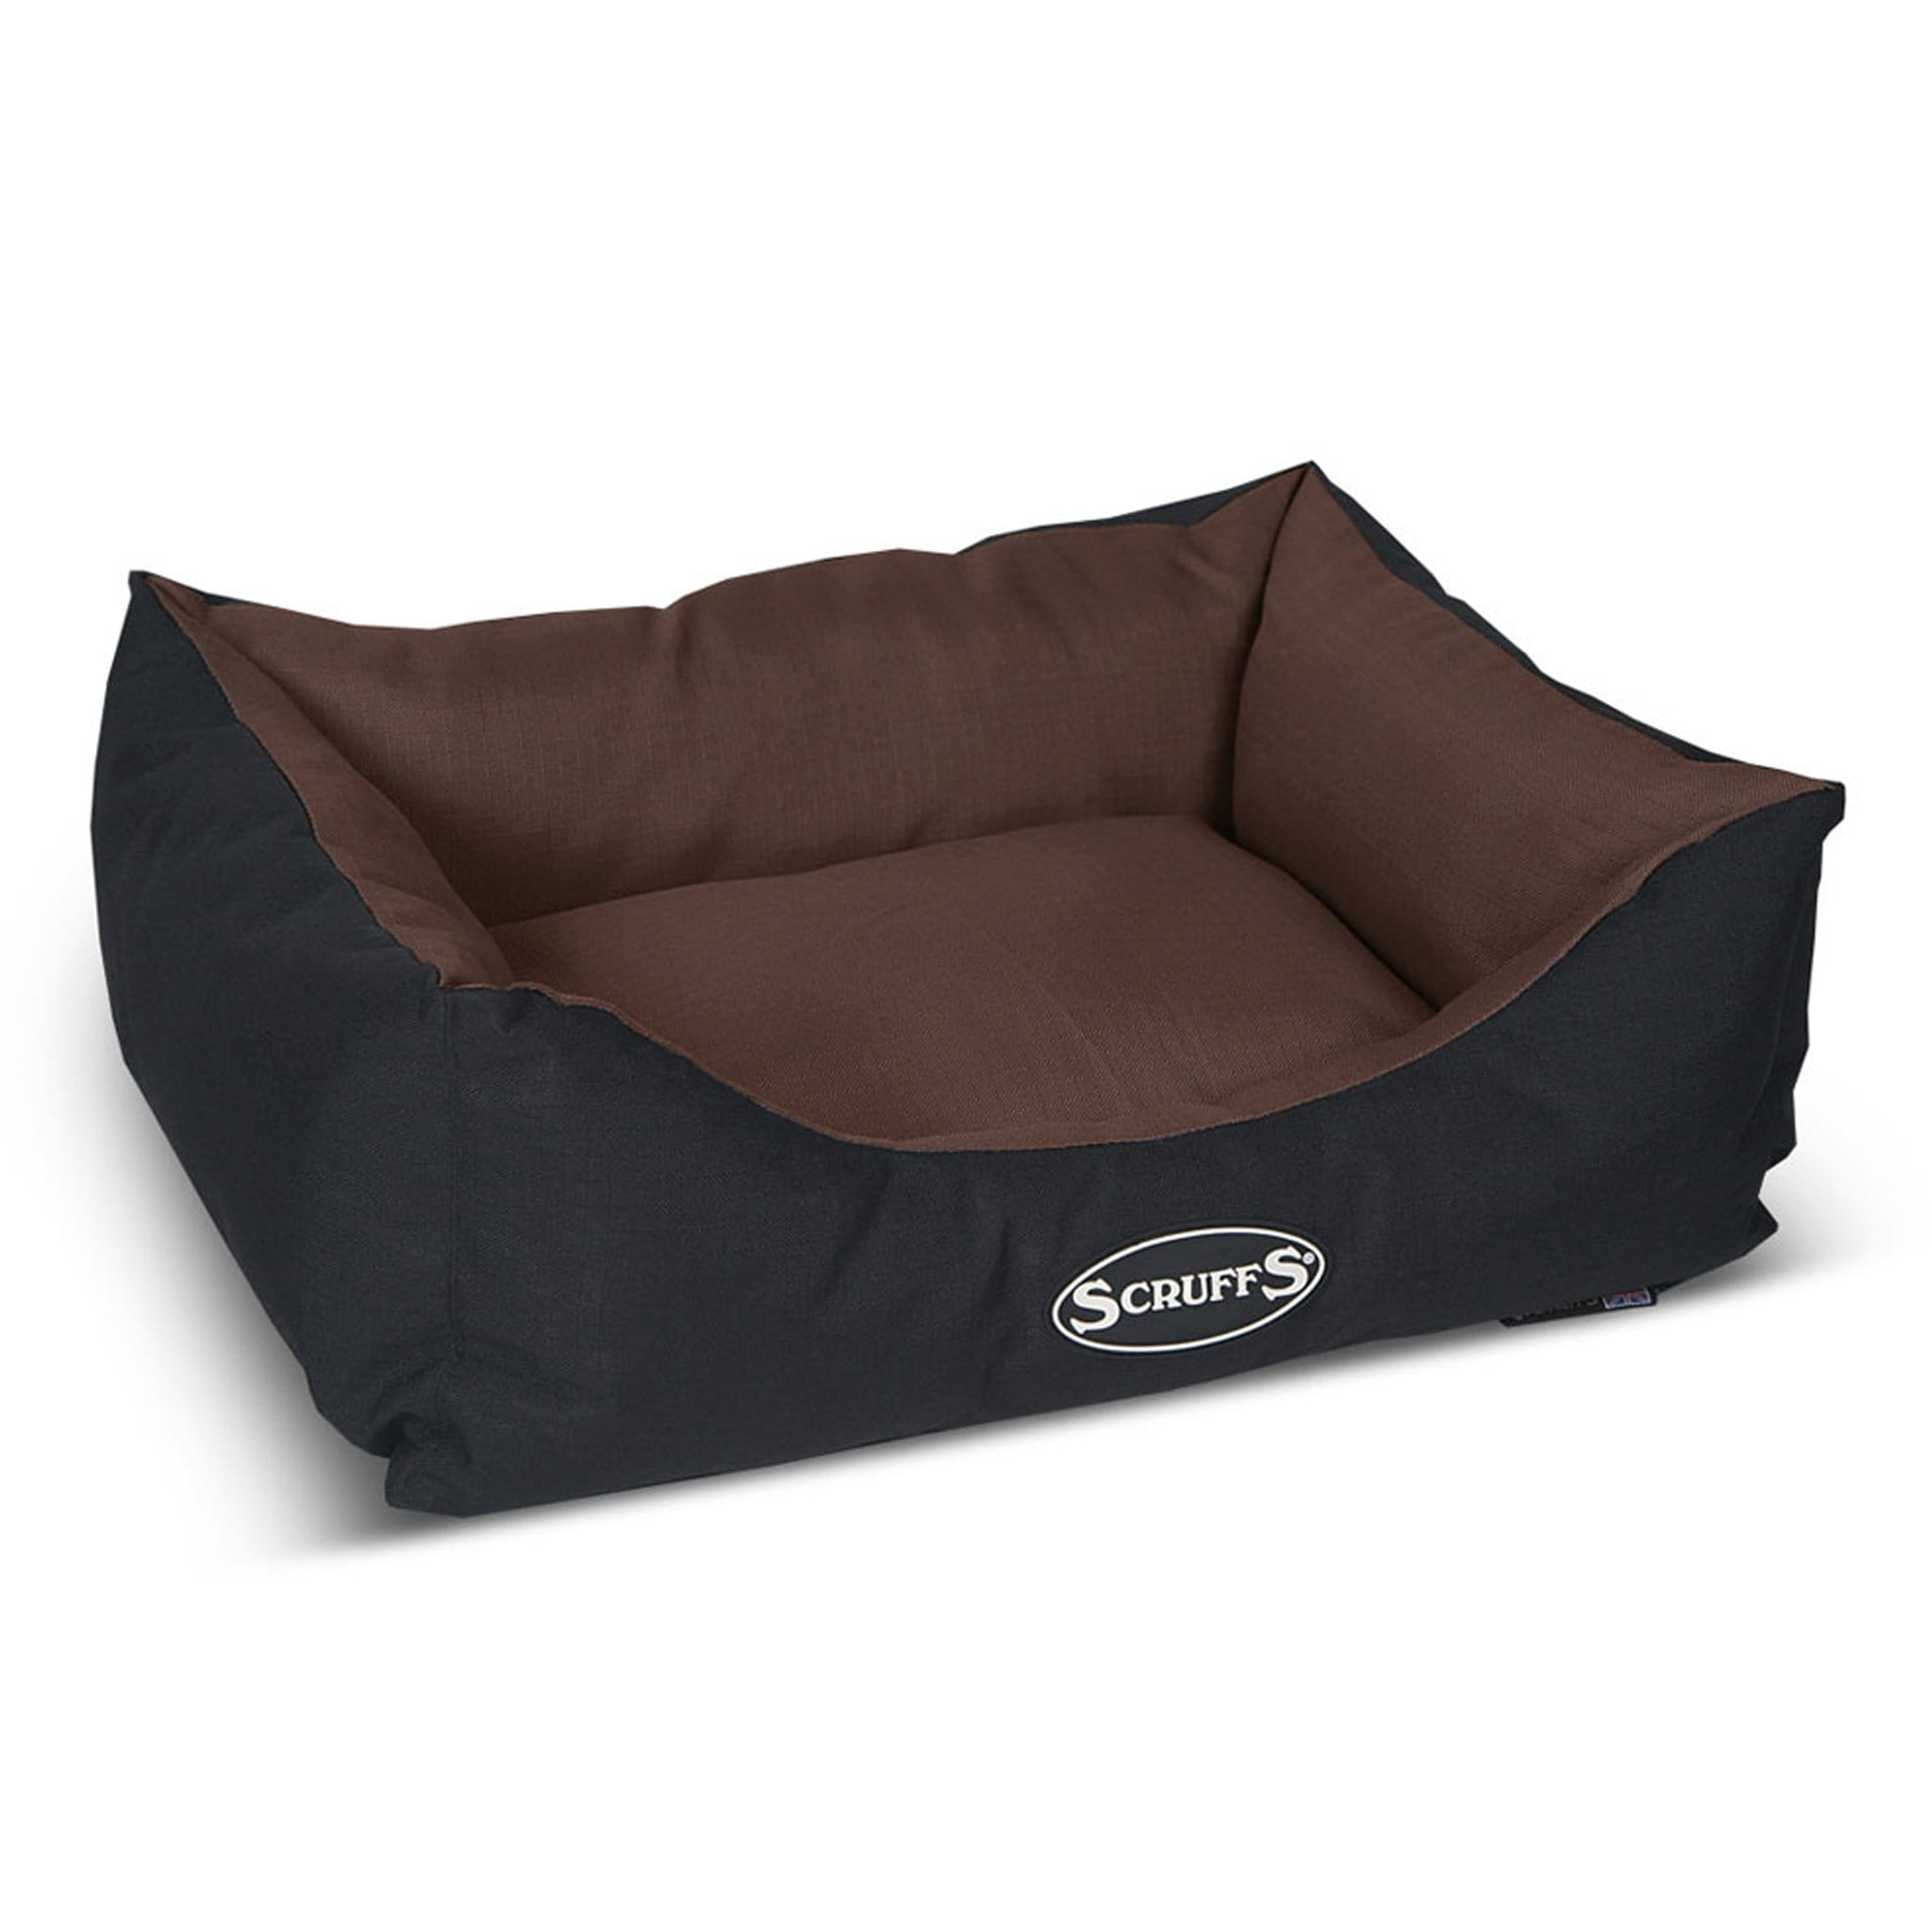 Scruffs Expedition Box Dog Bed 11646 Chocolate Small